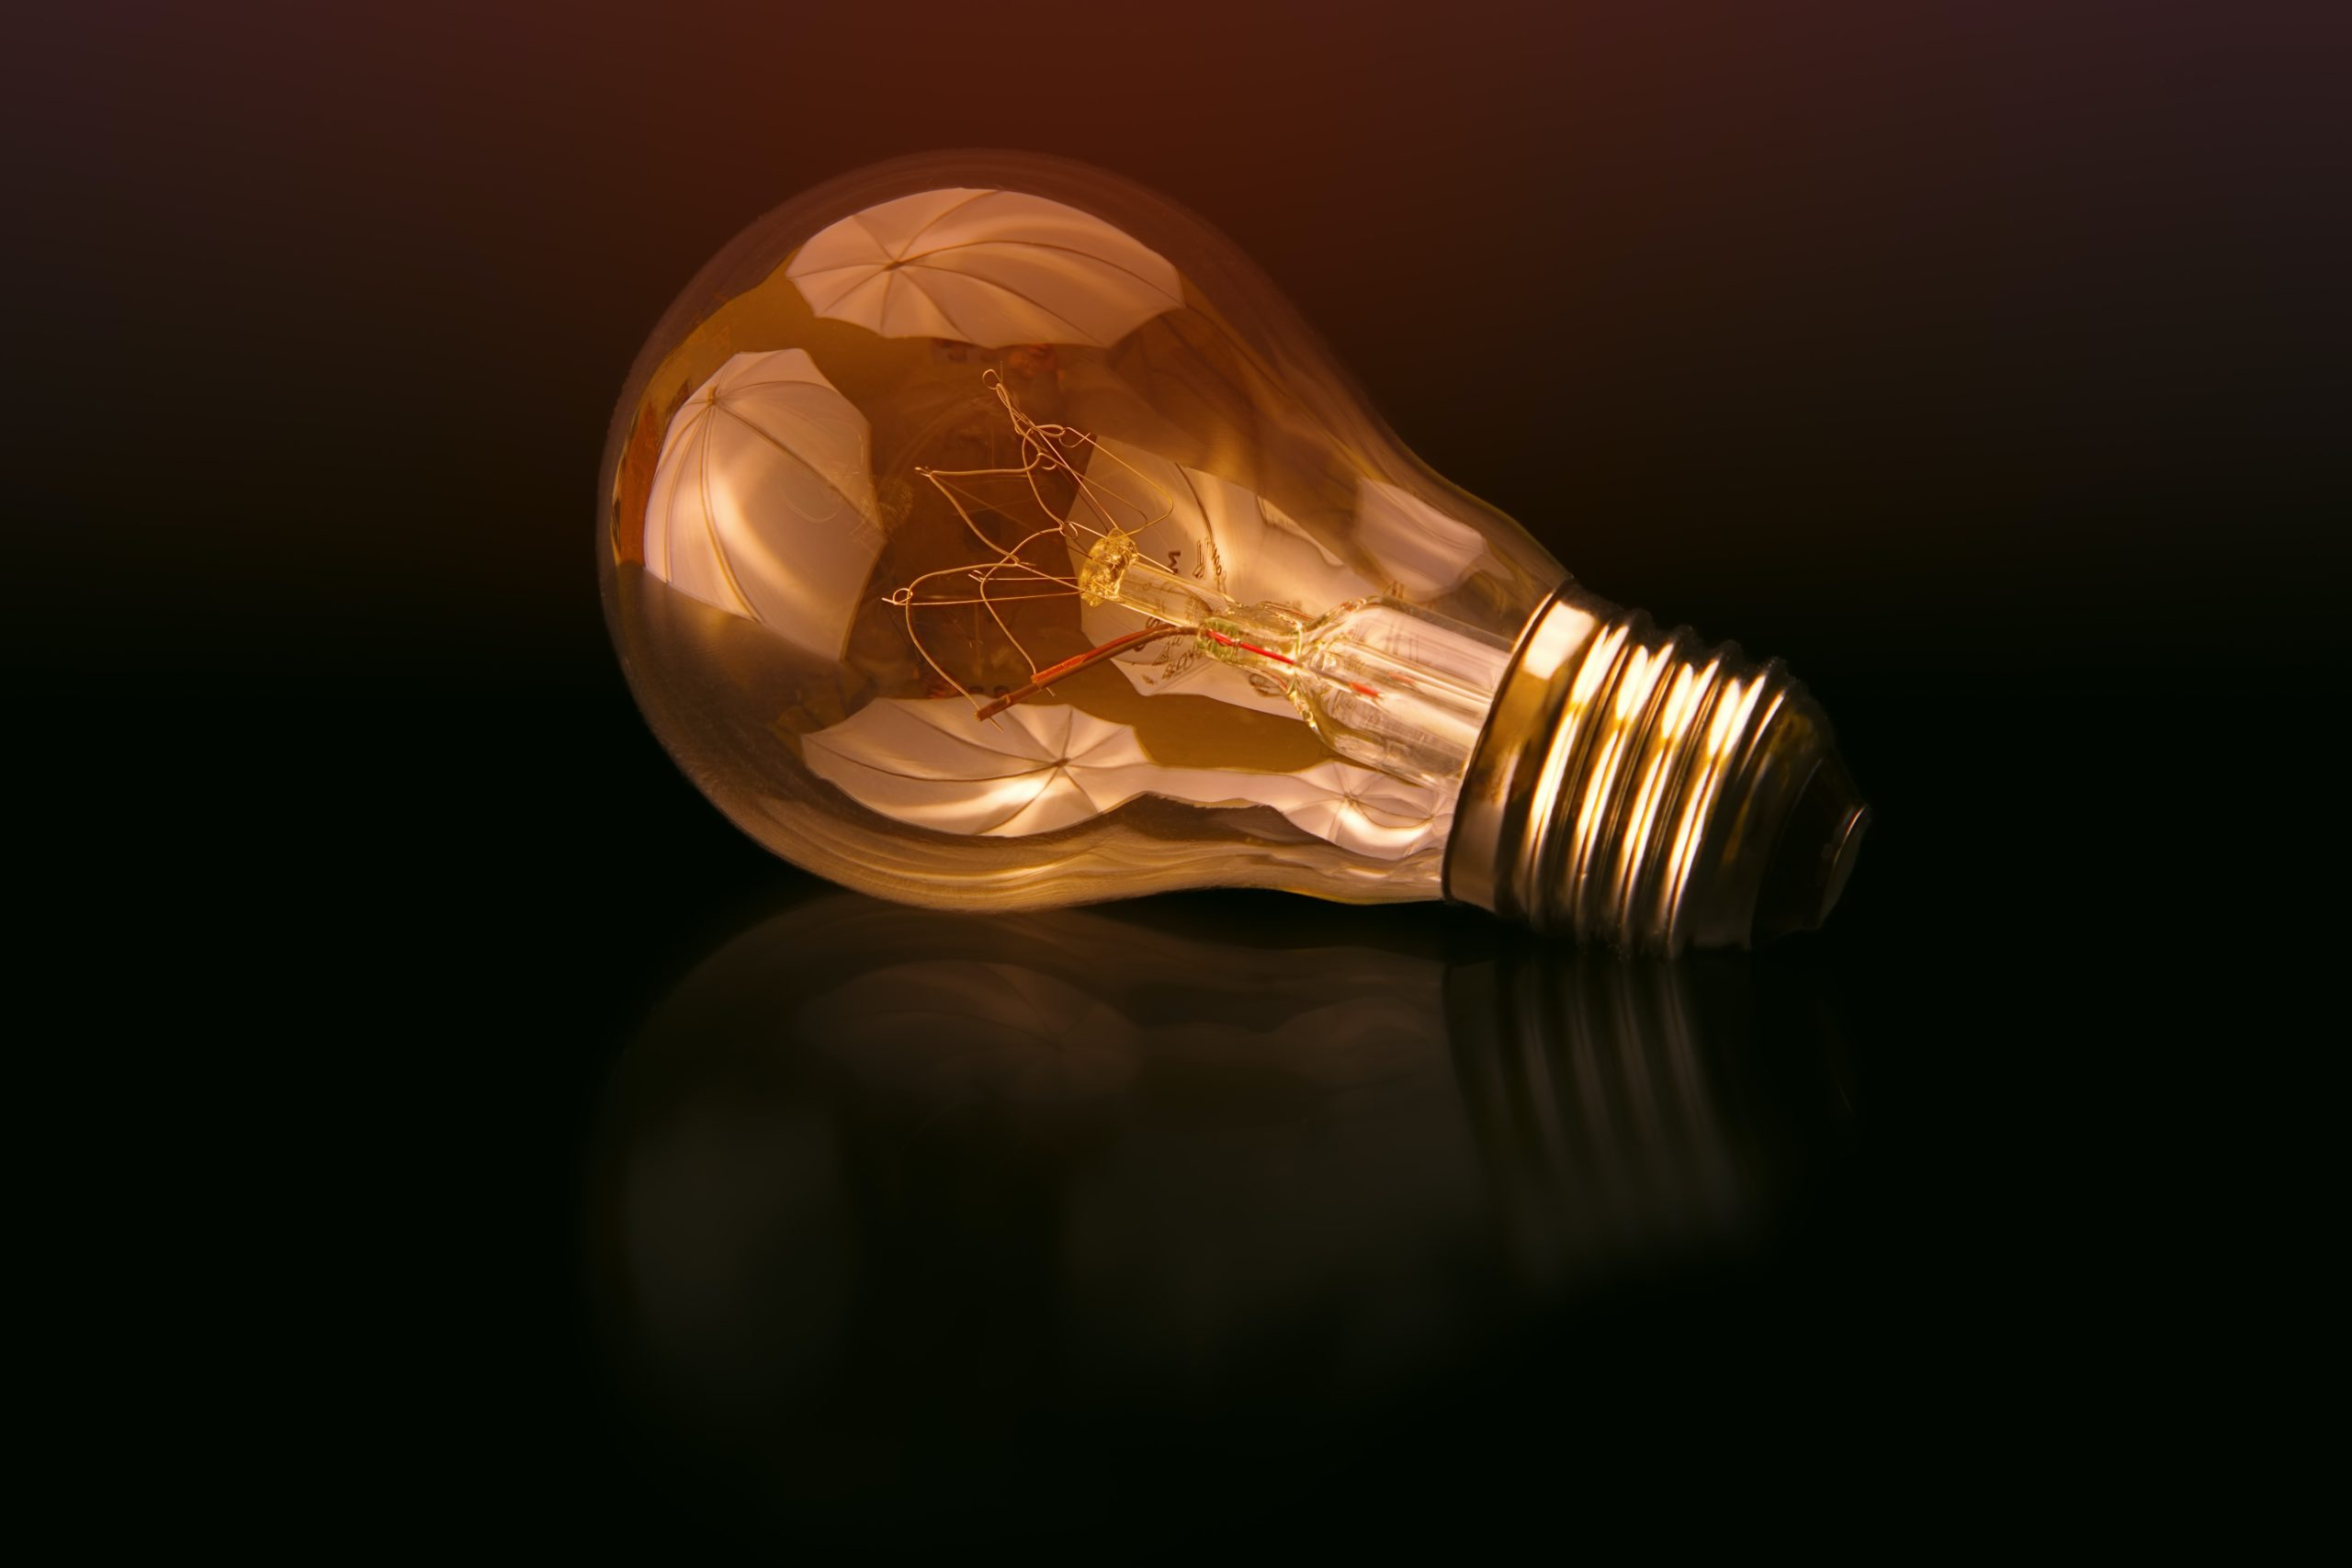 incandescent bulb on black surface